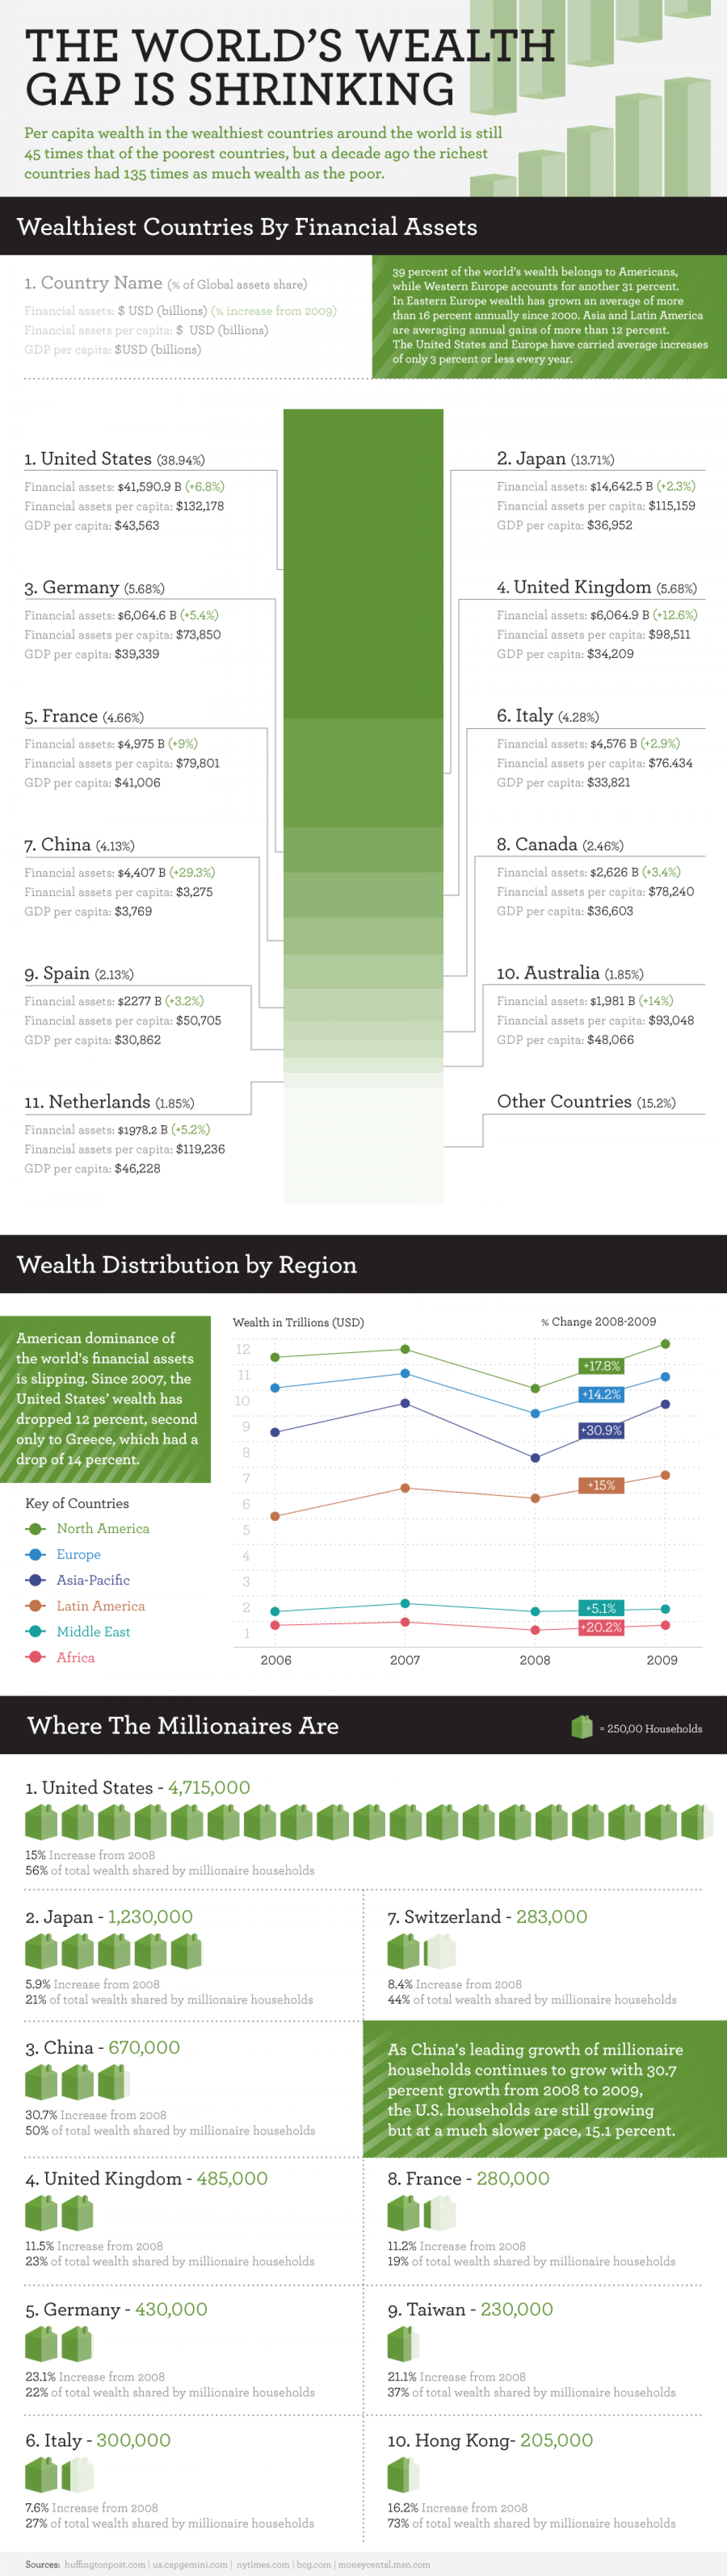 The Worlds Wealth Gap is Shrinking Infographic